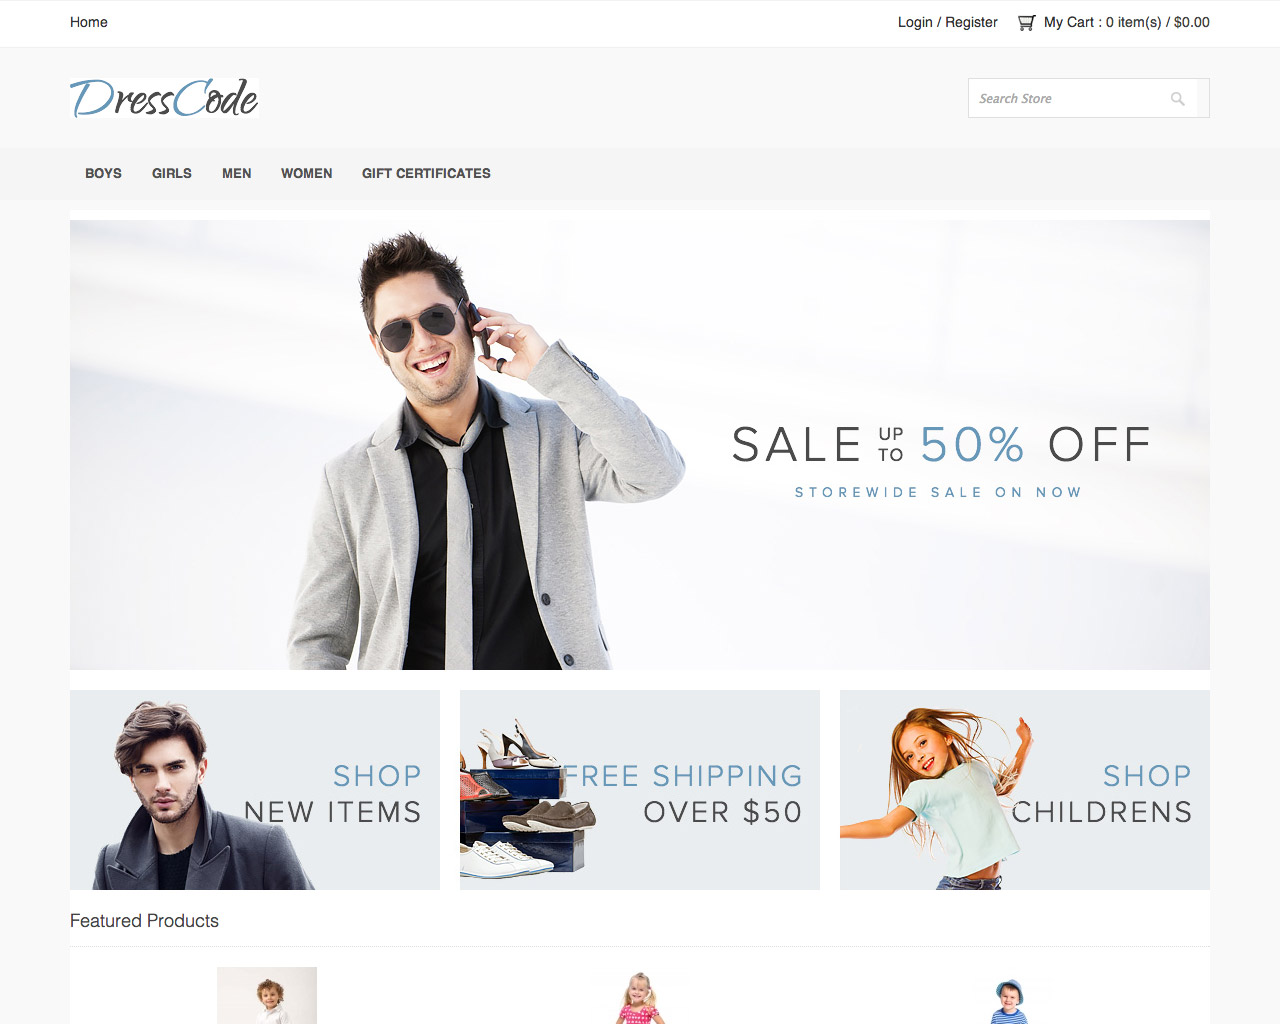 ECommerce Website Templates Free PinnacleCart Themes - Free ecommerce website templates shopping cart